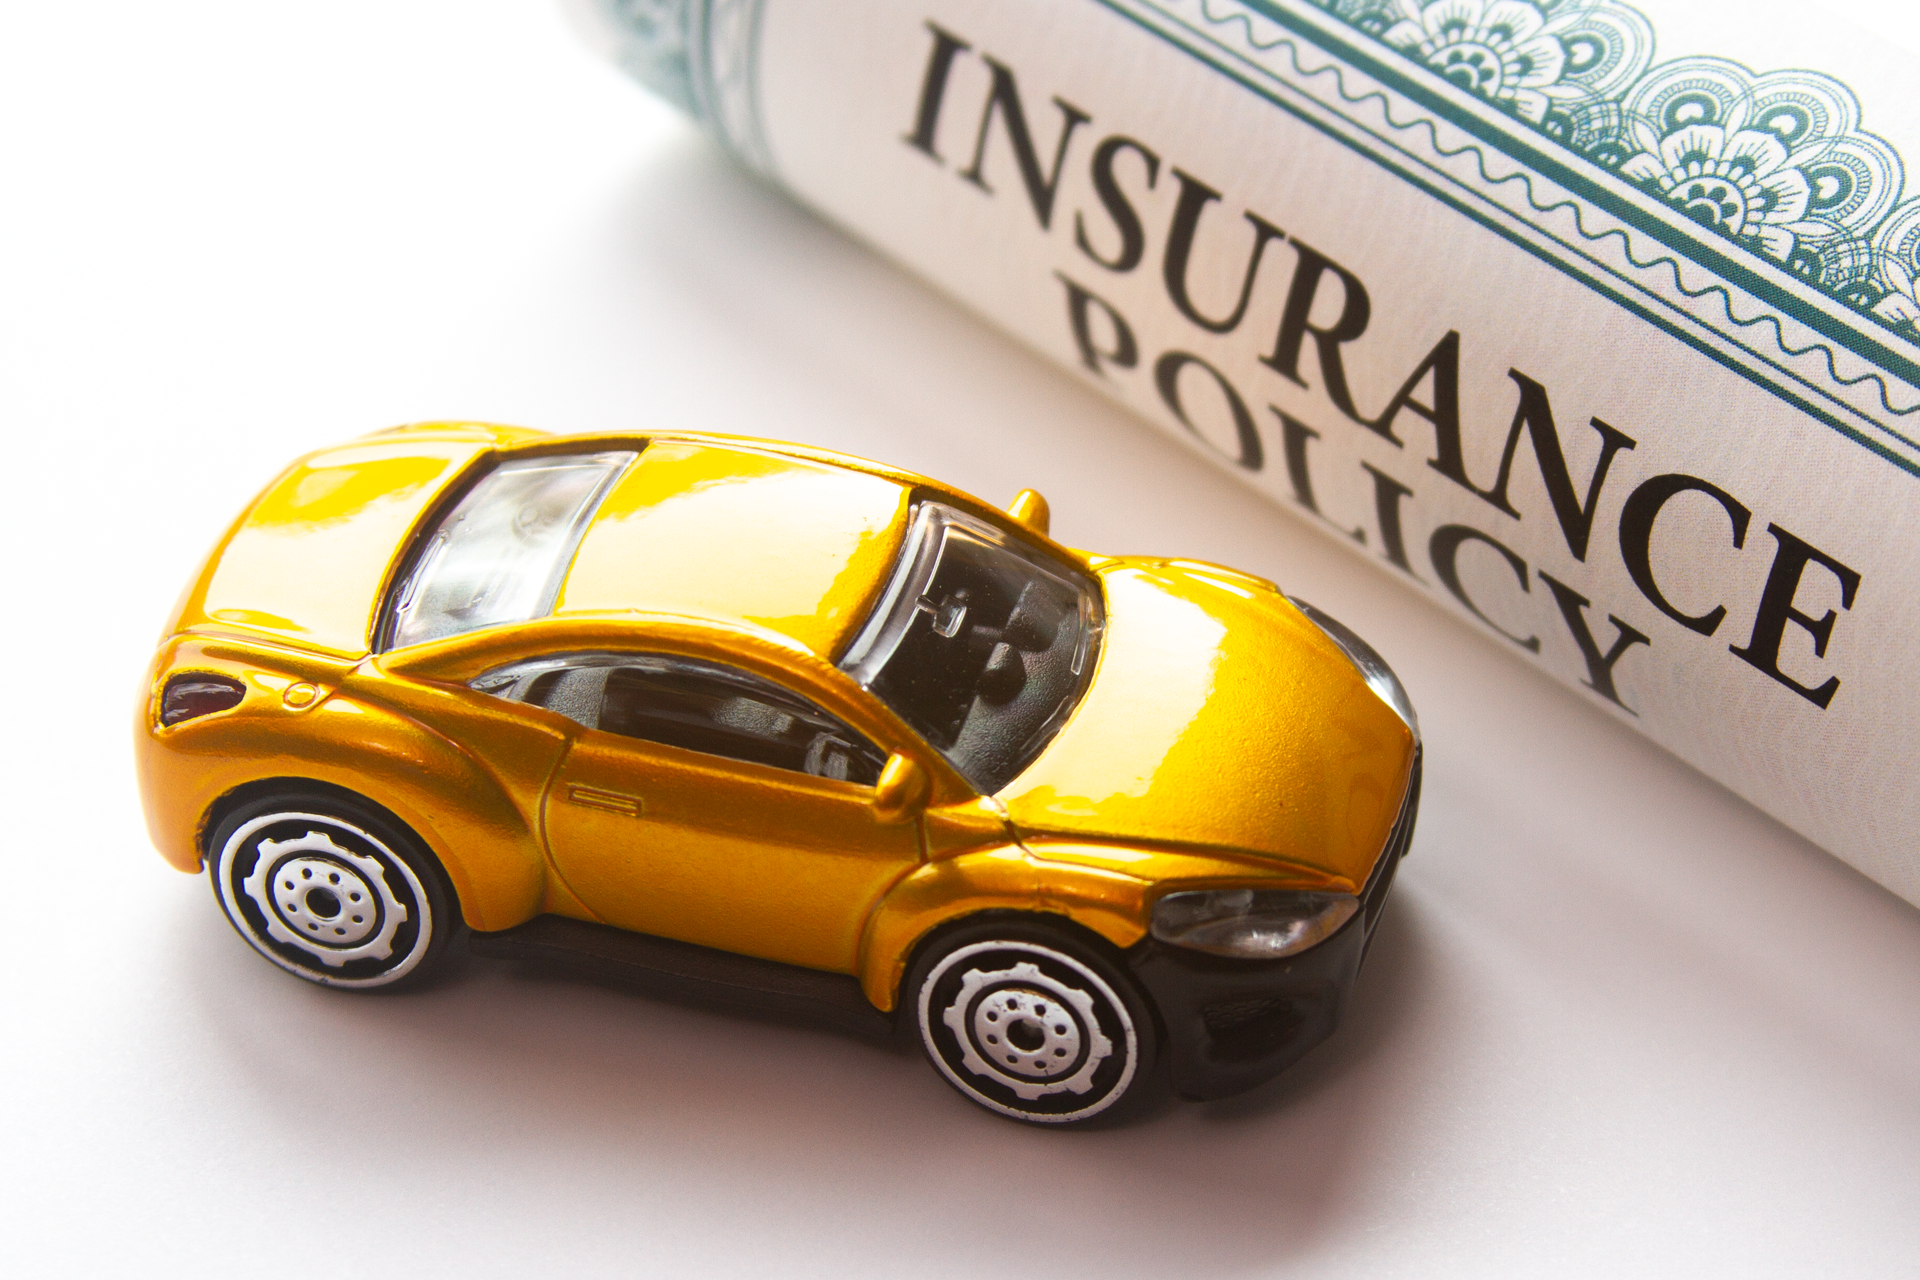 If fewer people are driving, shouldn't car insurance be cheaper?